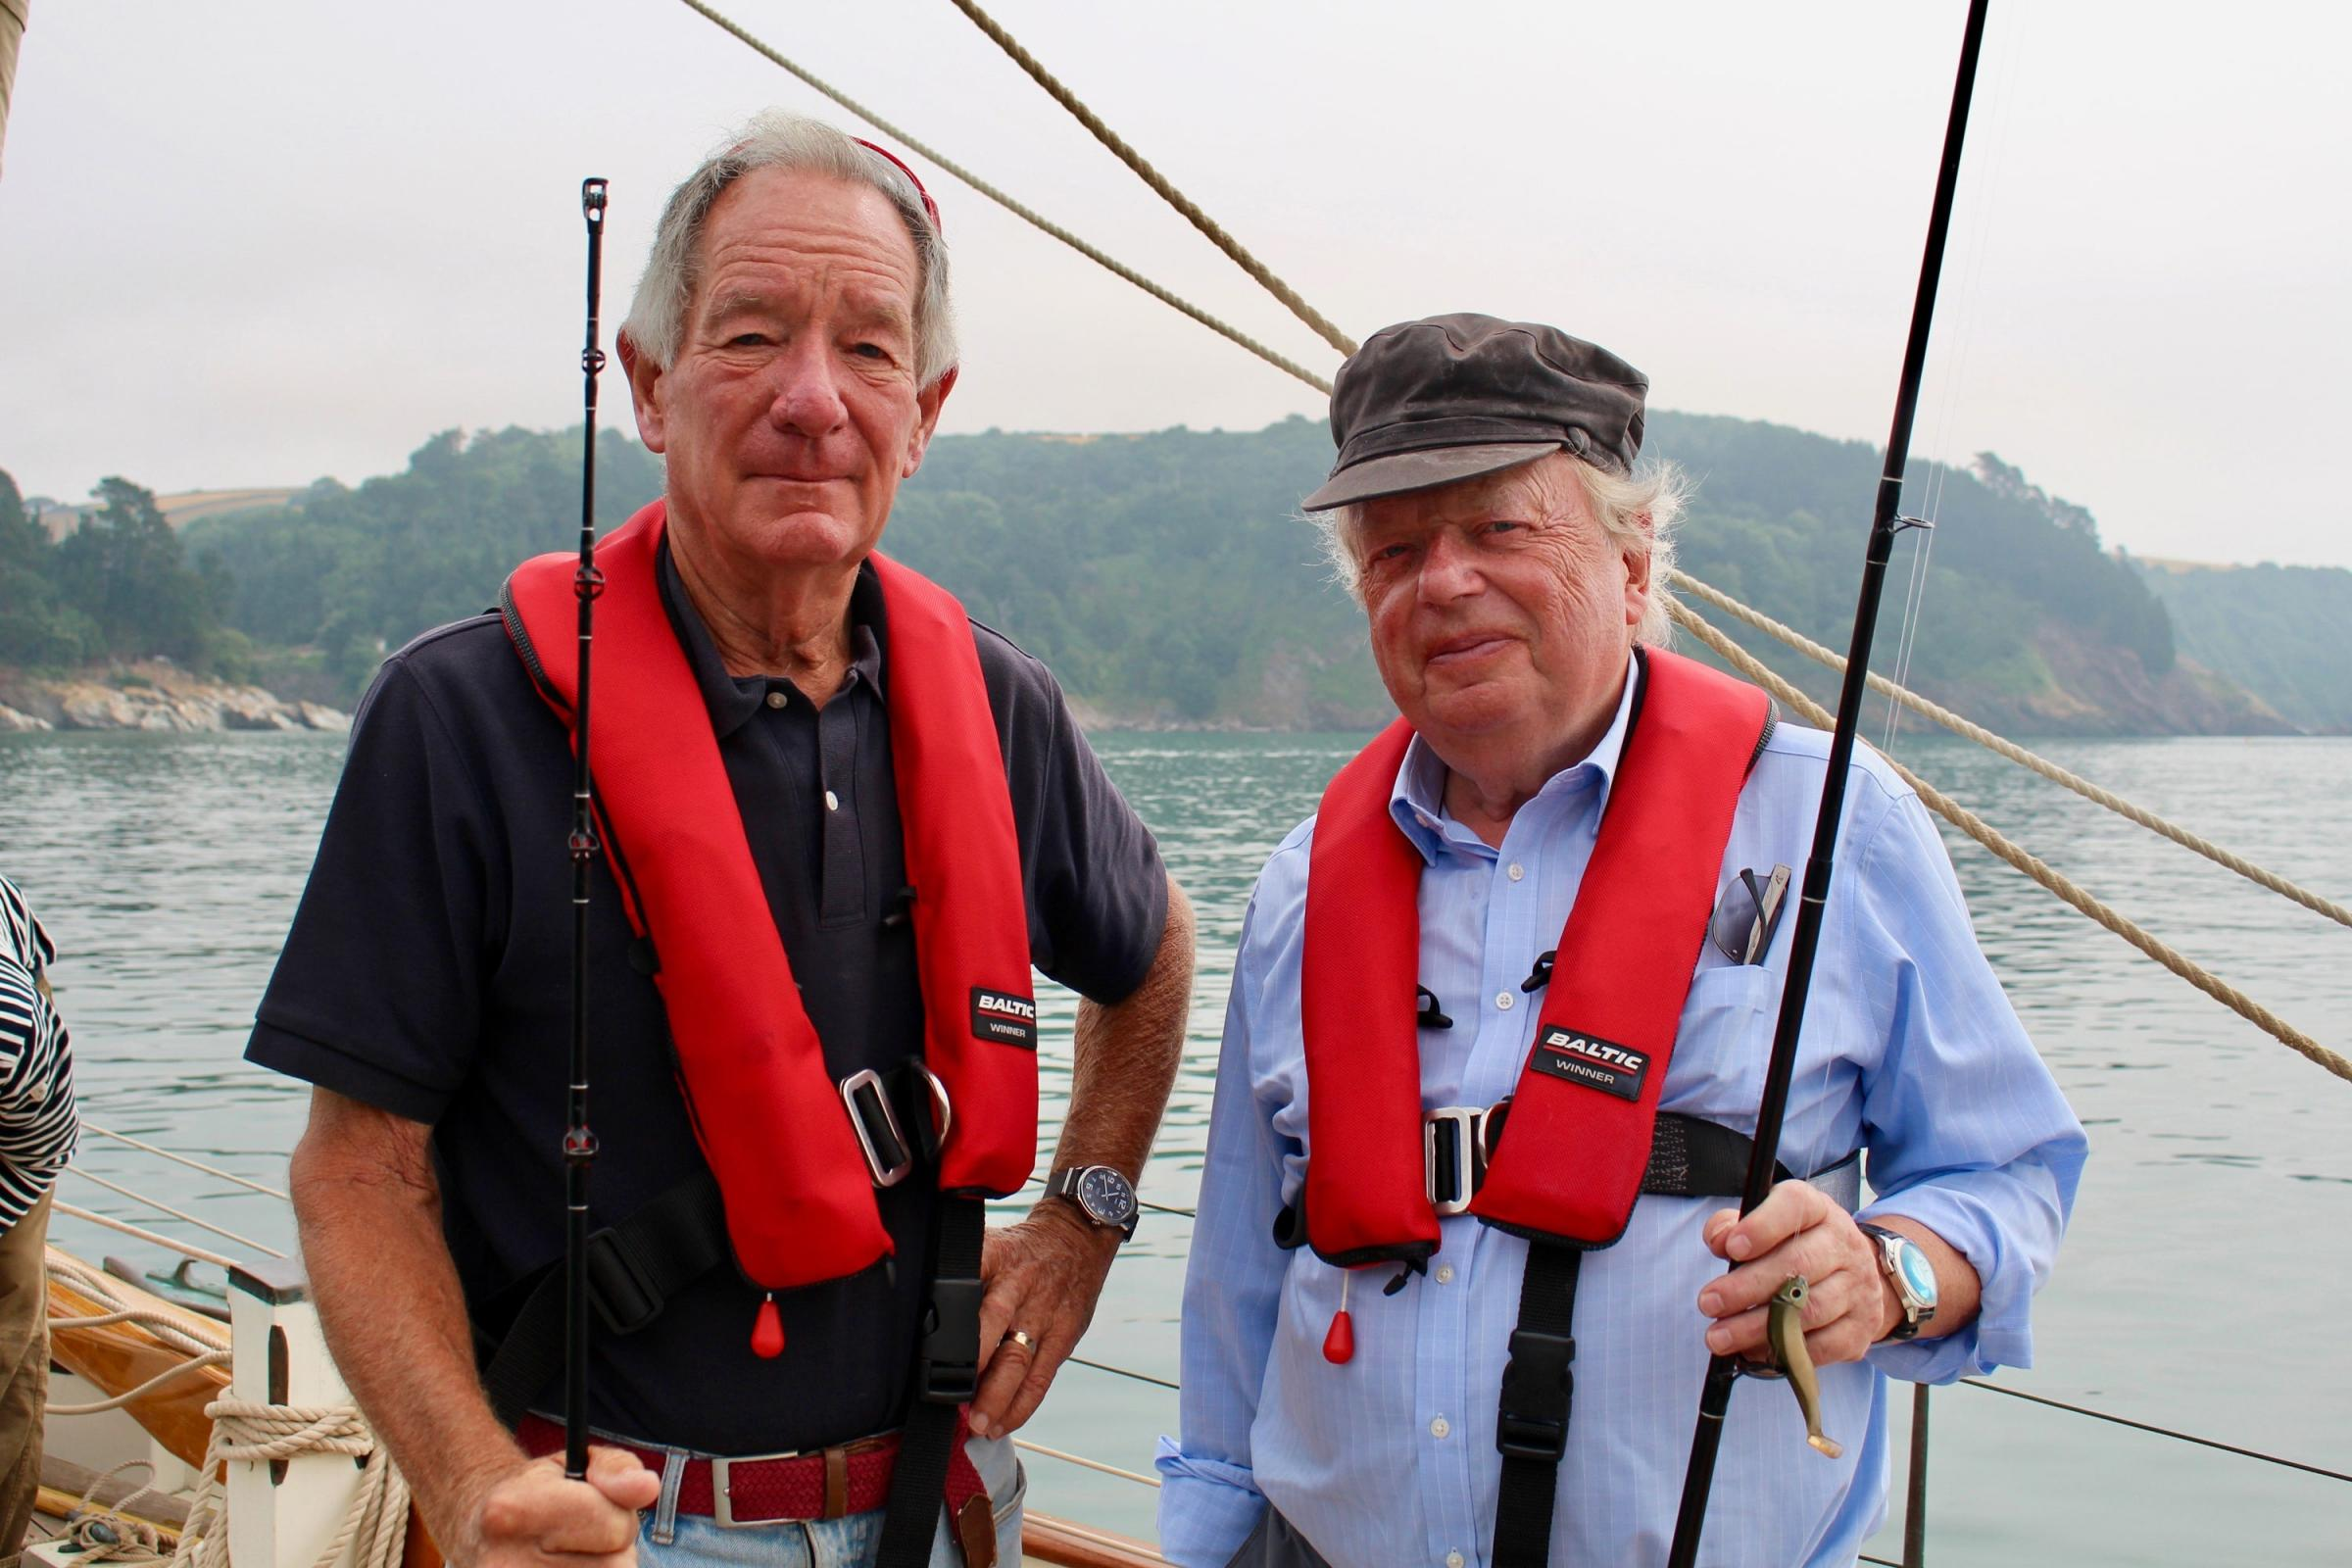 John Sergeant and Michael Buerk holding fishing rods on Bonaventure (yacht) at sea.